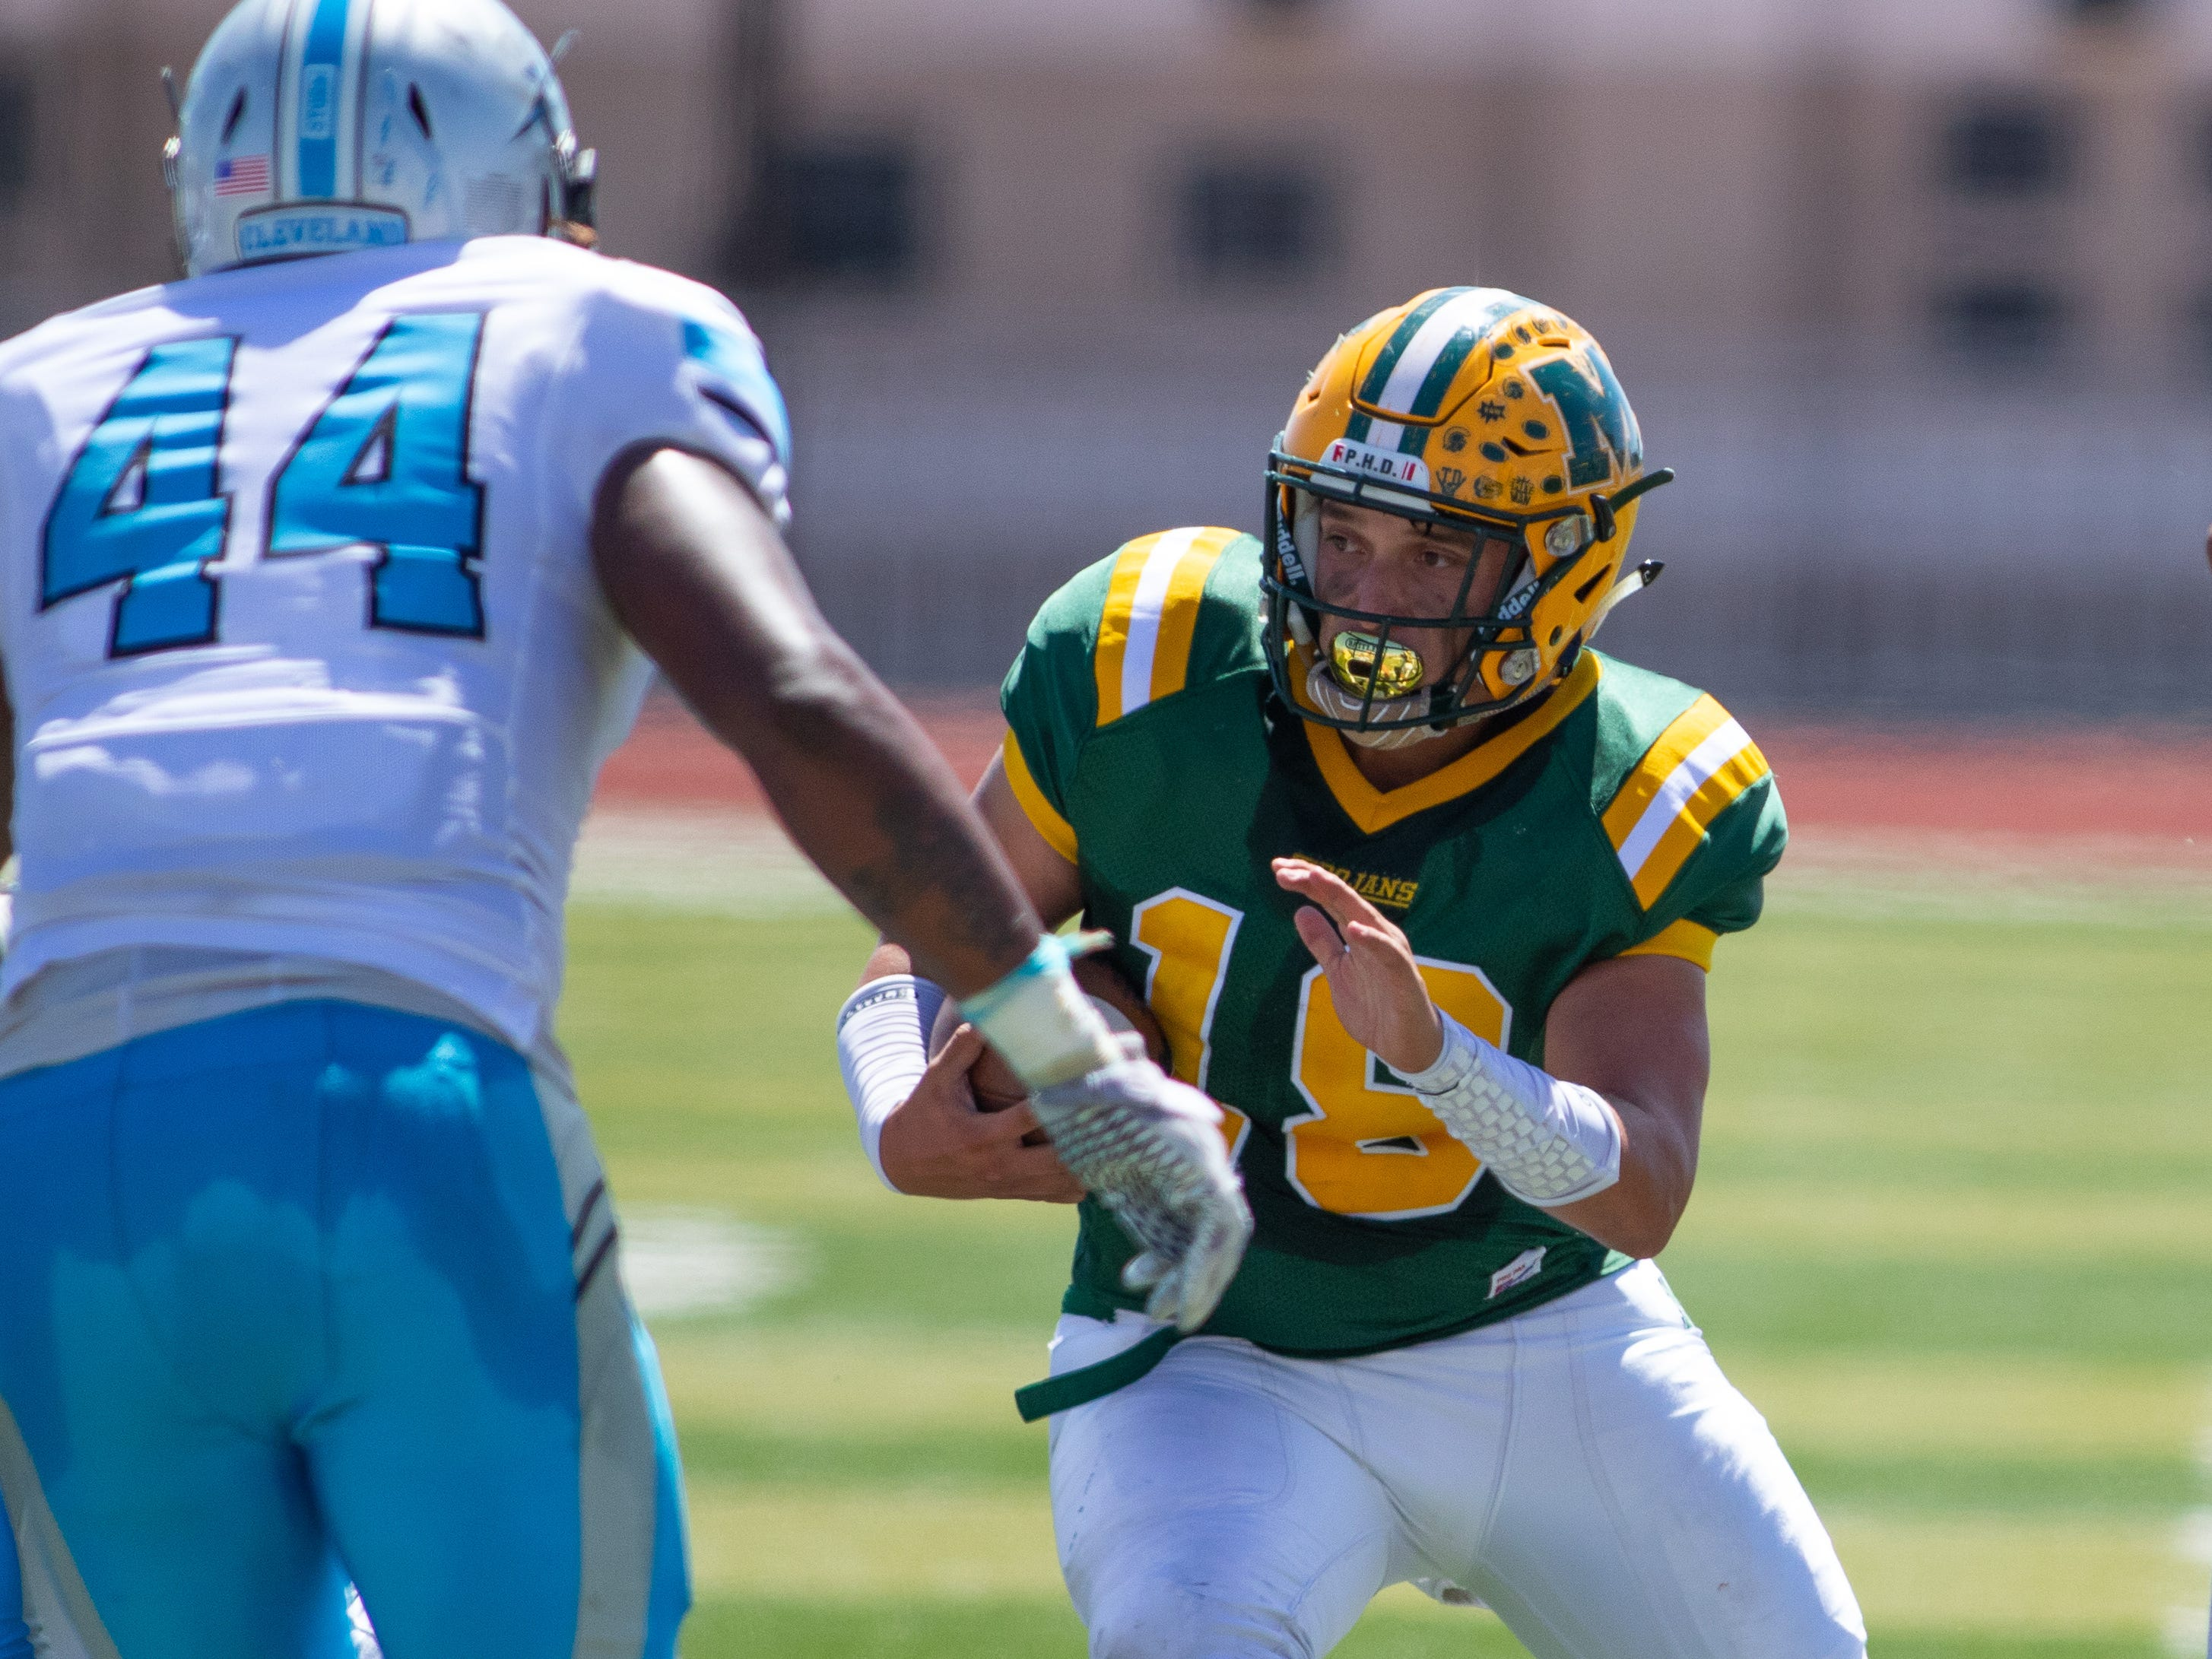 Jacob Moreno and the Mayfield Trojans face Oñate Thursday night at the Field of Dreams.